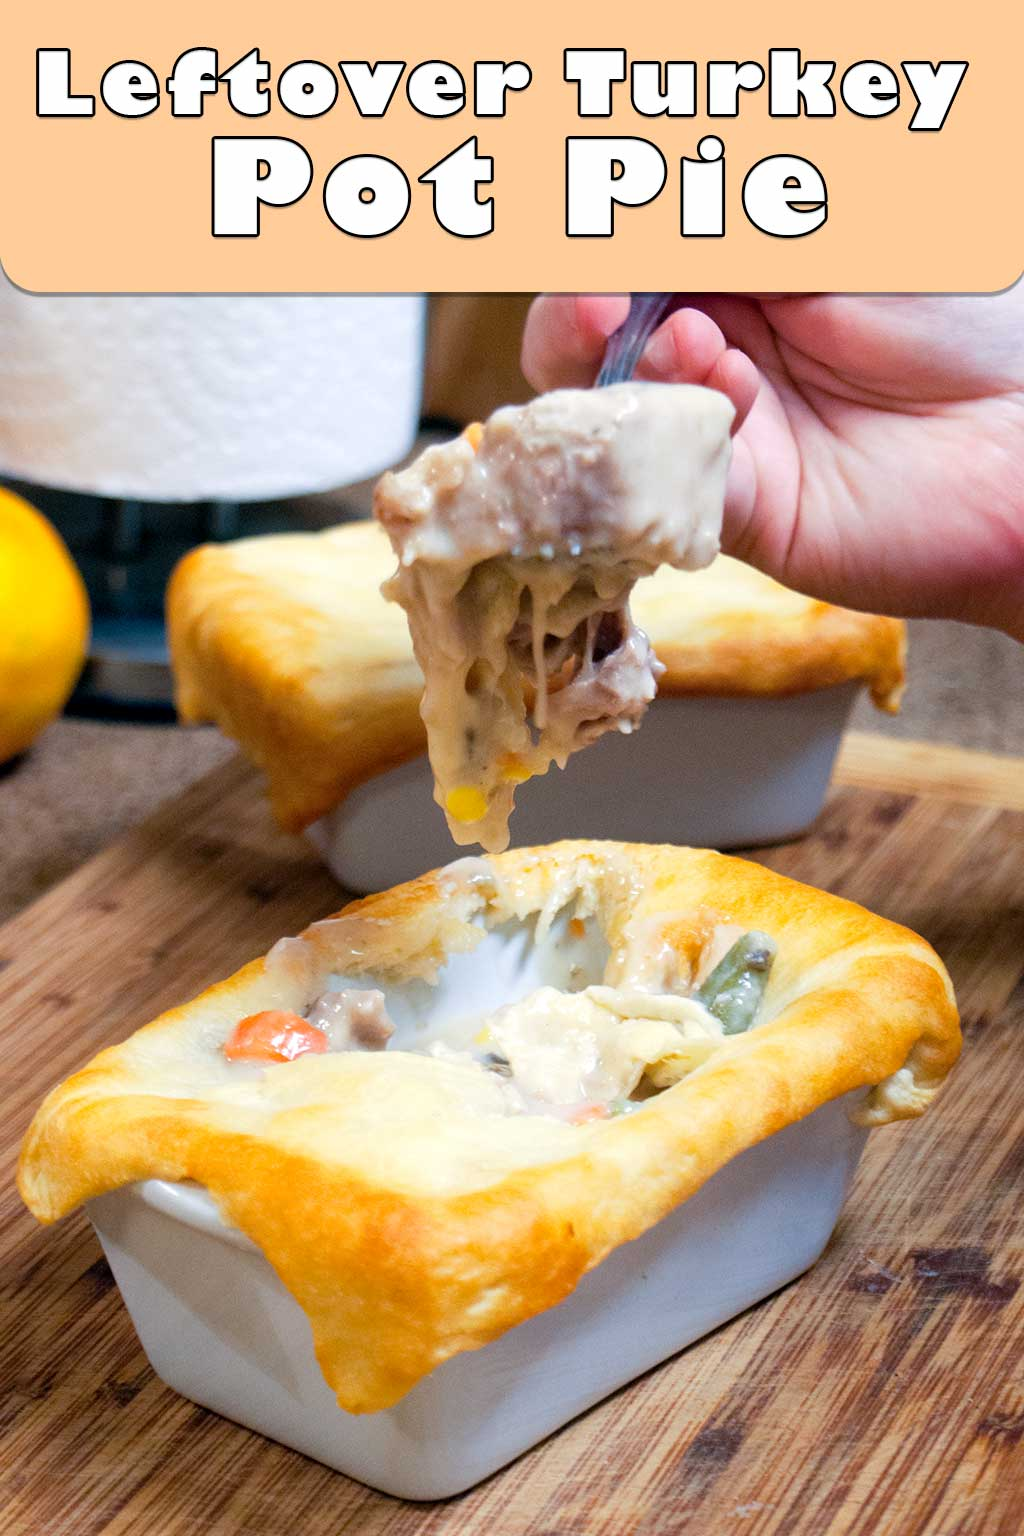 Leftover Turkey Pot Pie – Simple Post-Holiday Comfort Food